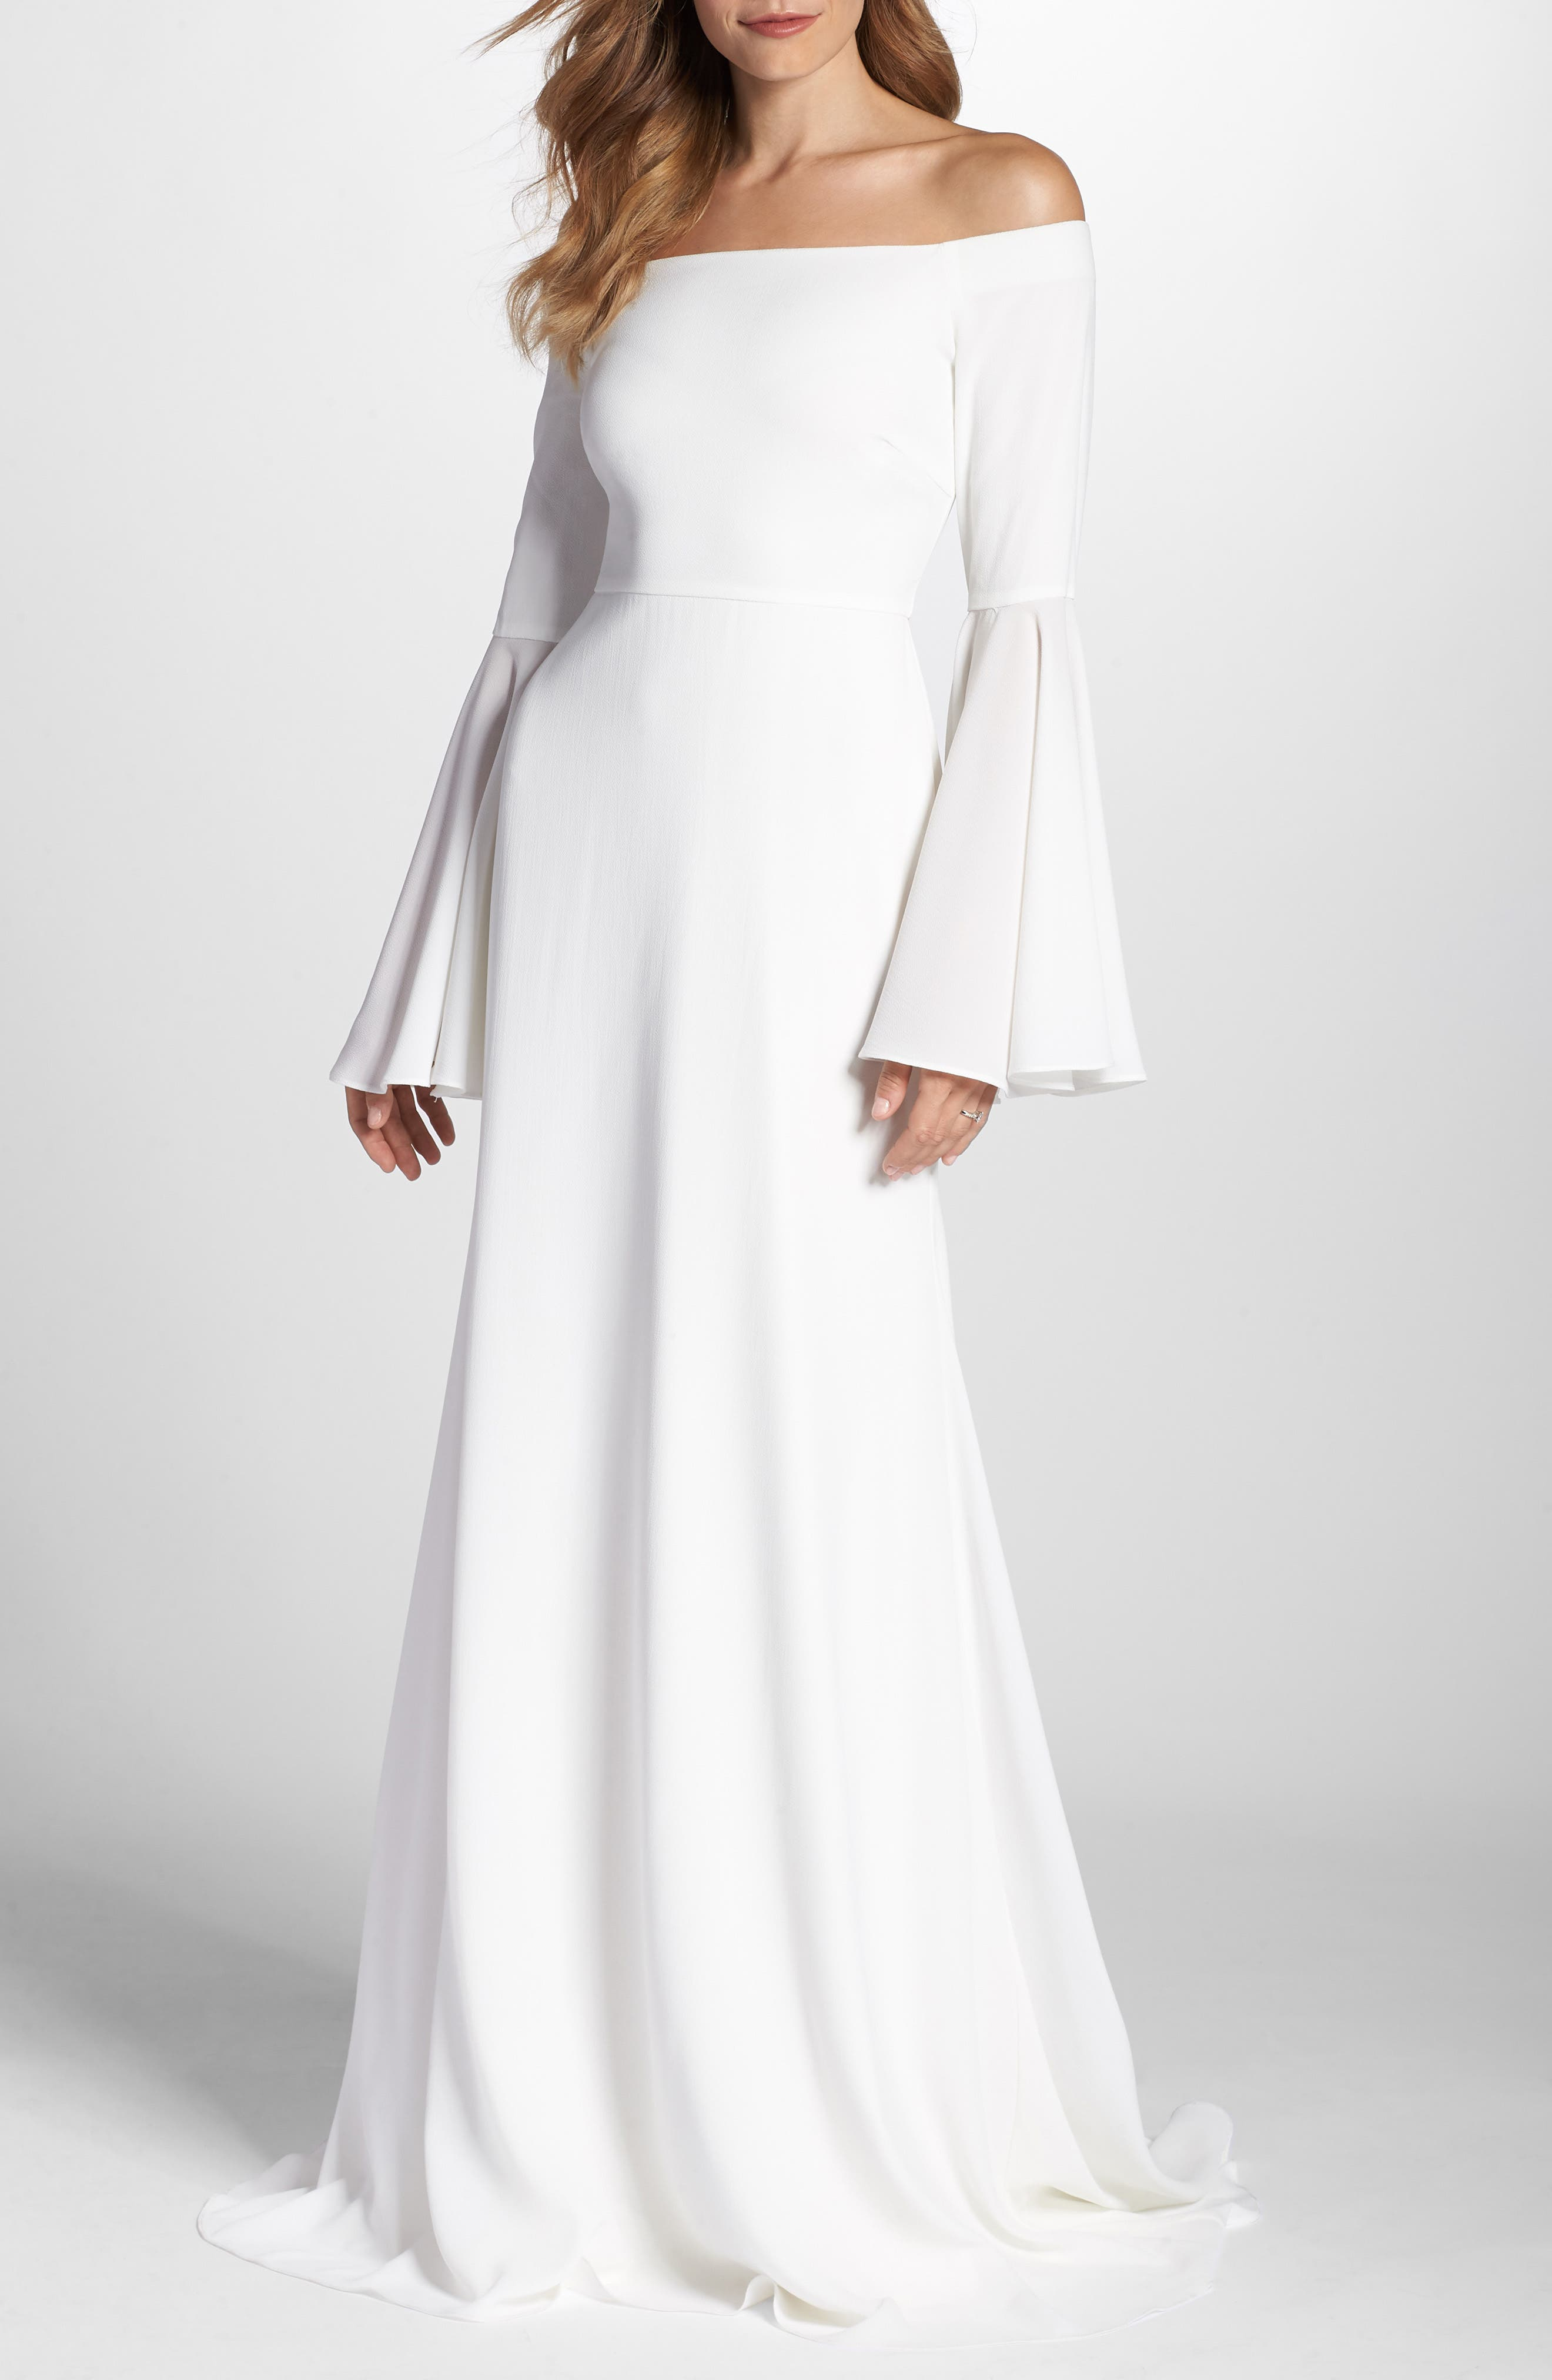 Bowie Off the Shoulder Bell Sleeve Gown,                             Main thumbnail 1, color,                             White